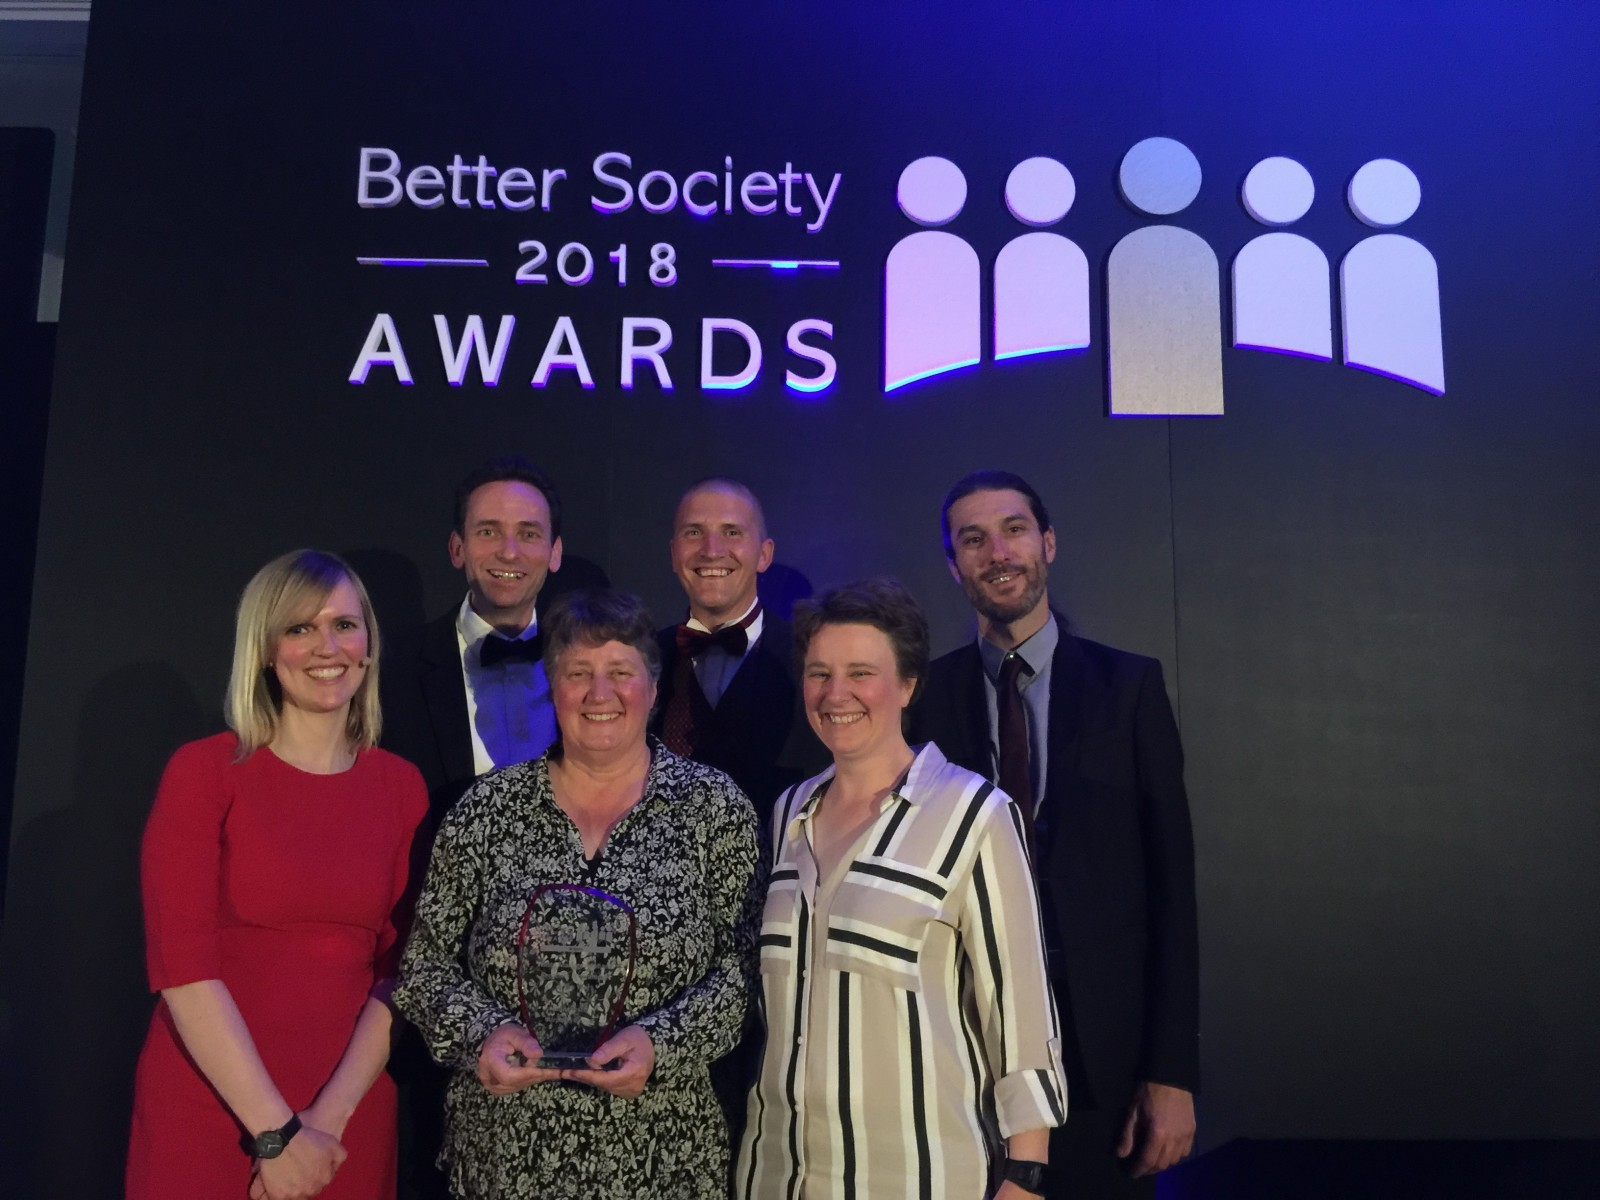 Better Society Stansted award 2